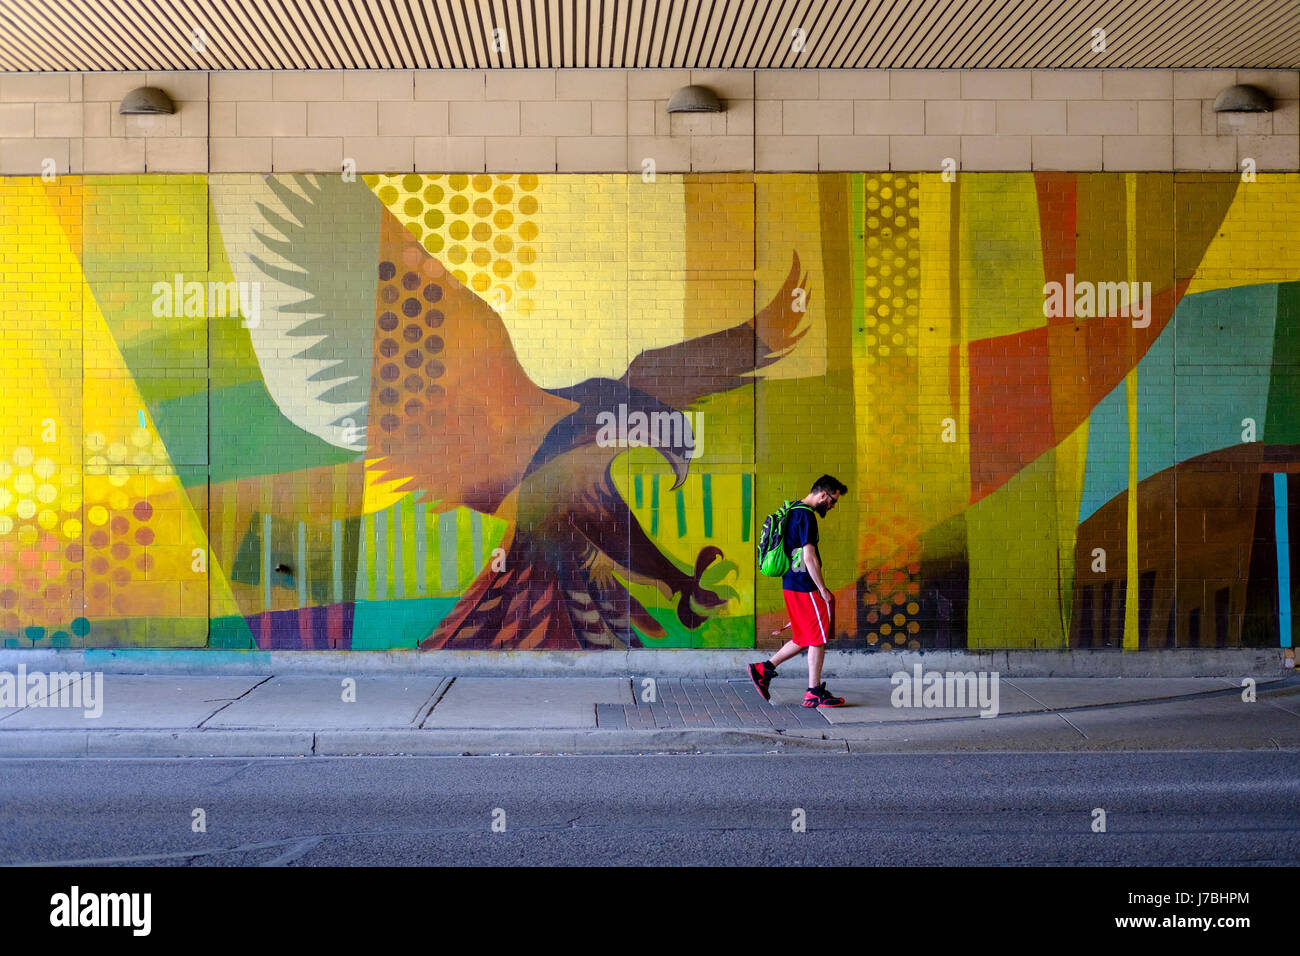 wall-graffiti-art-eagle-about-to-grab-a-male-pedestrian-walking-on-J7BHPM.jpg